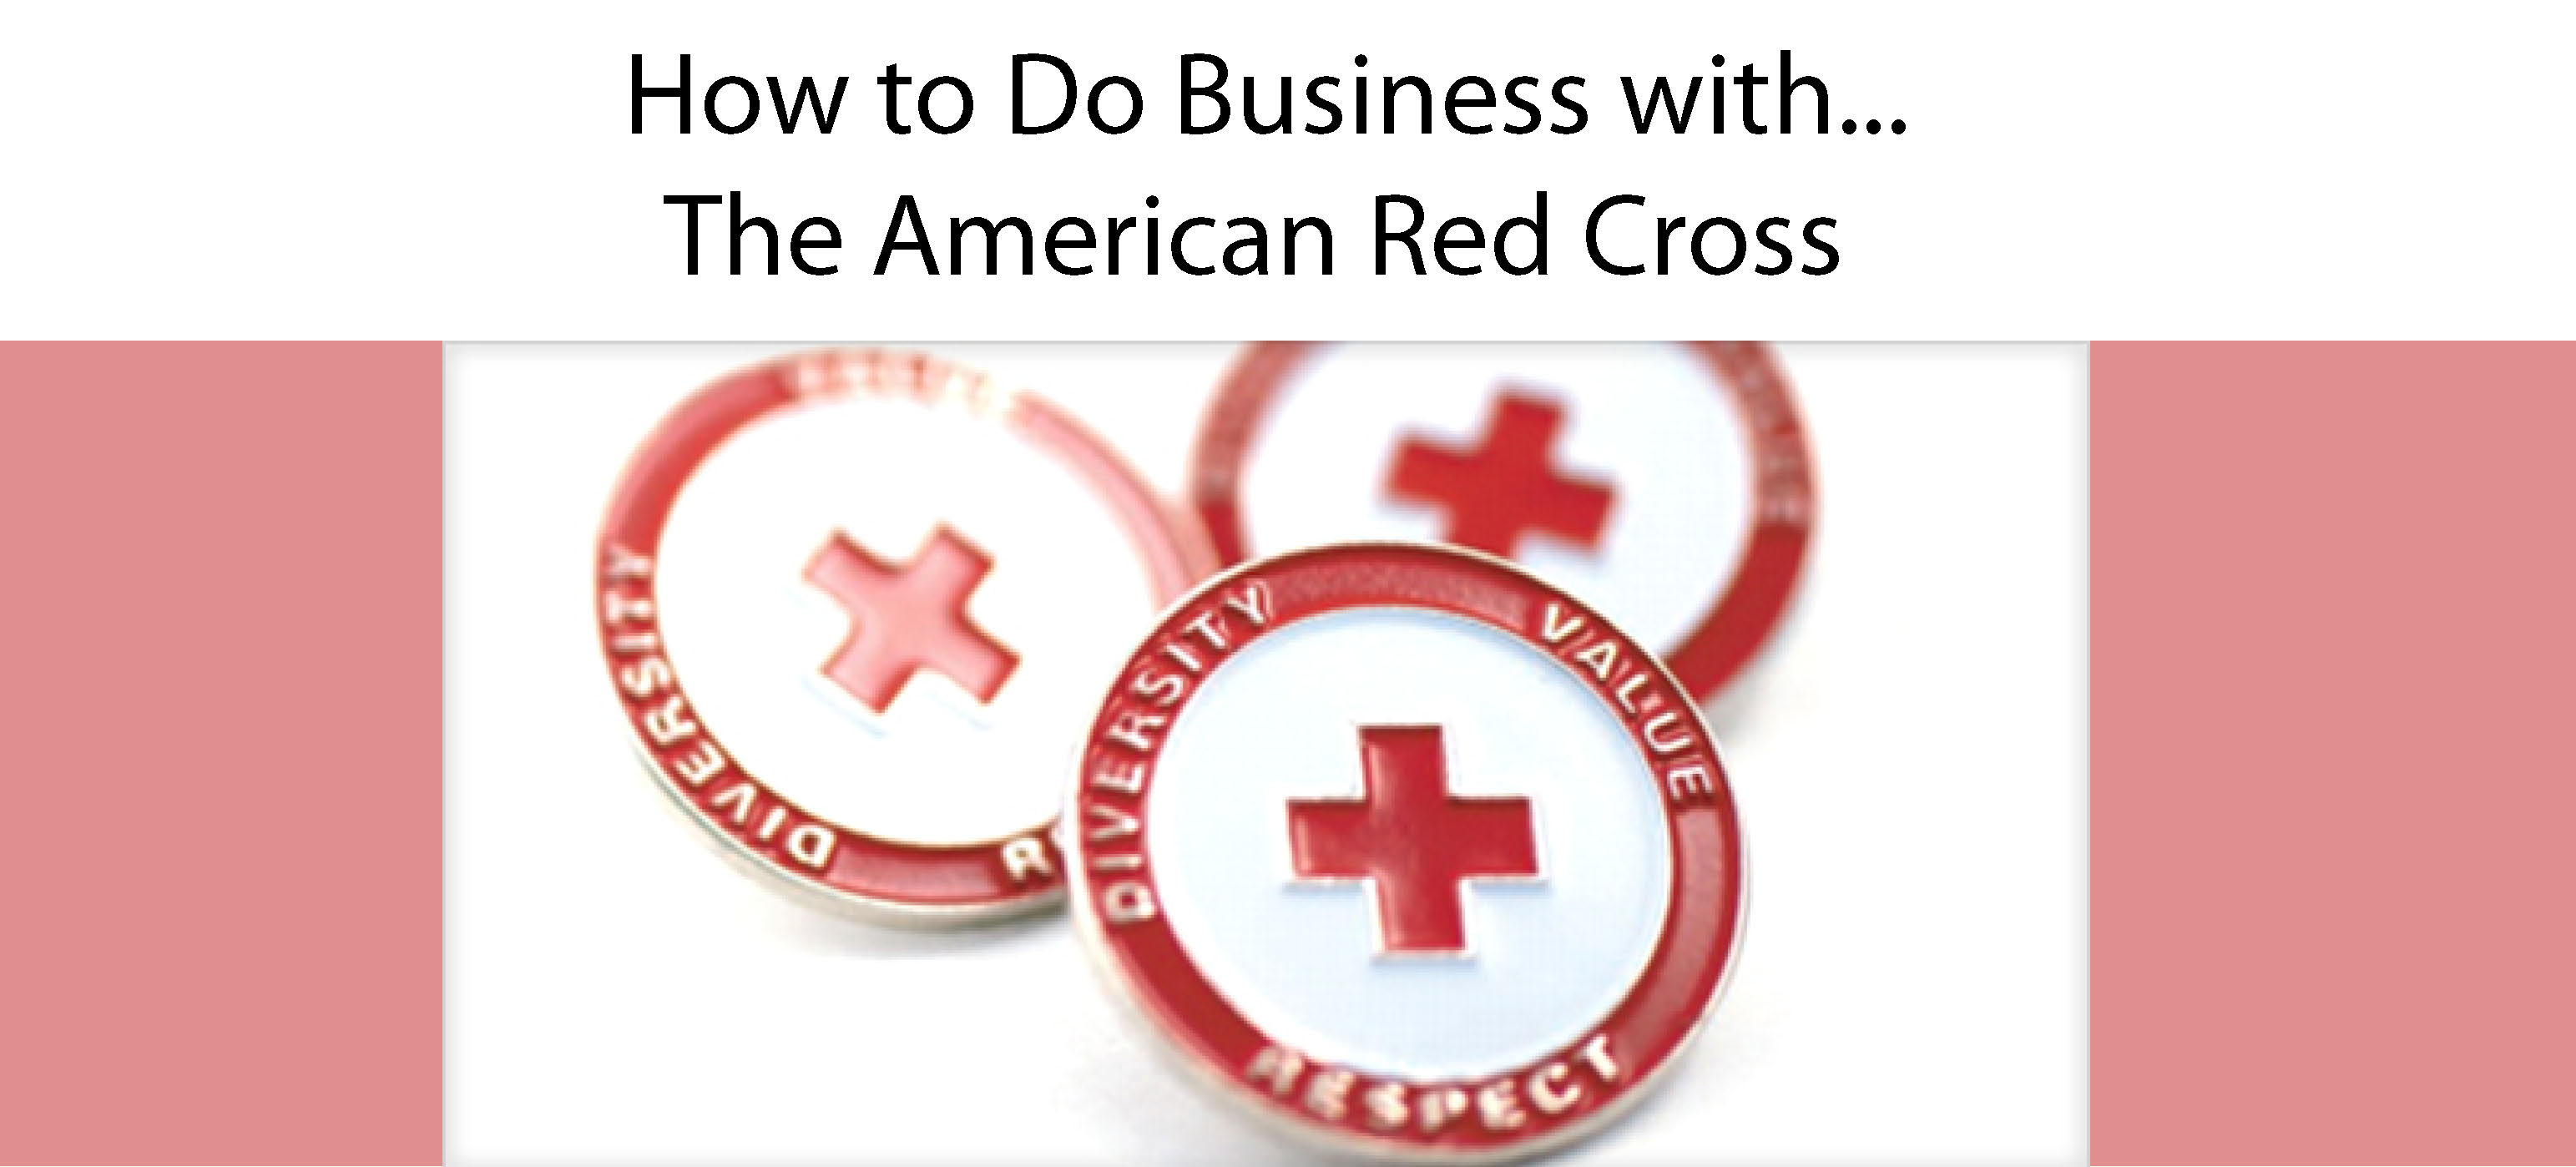 American Red Cross Workshop Denver Co Mpmsdc